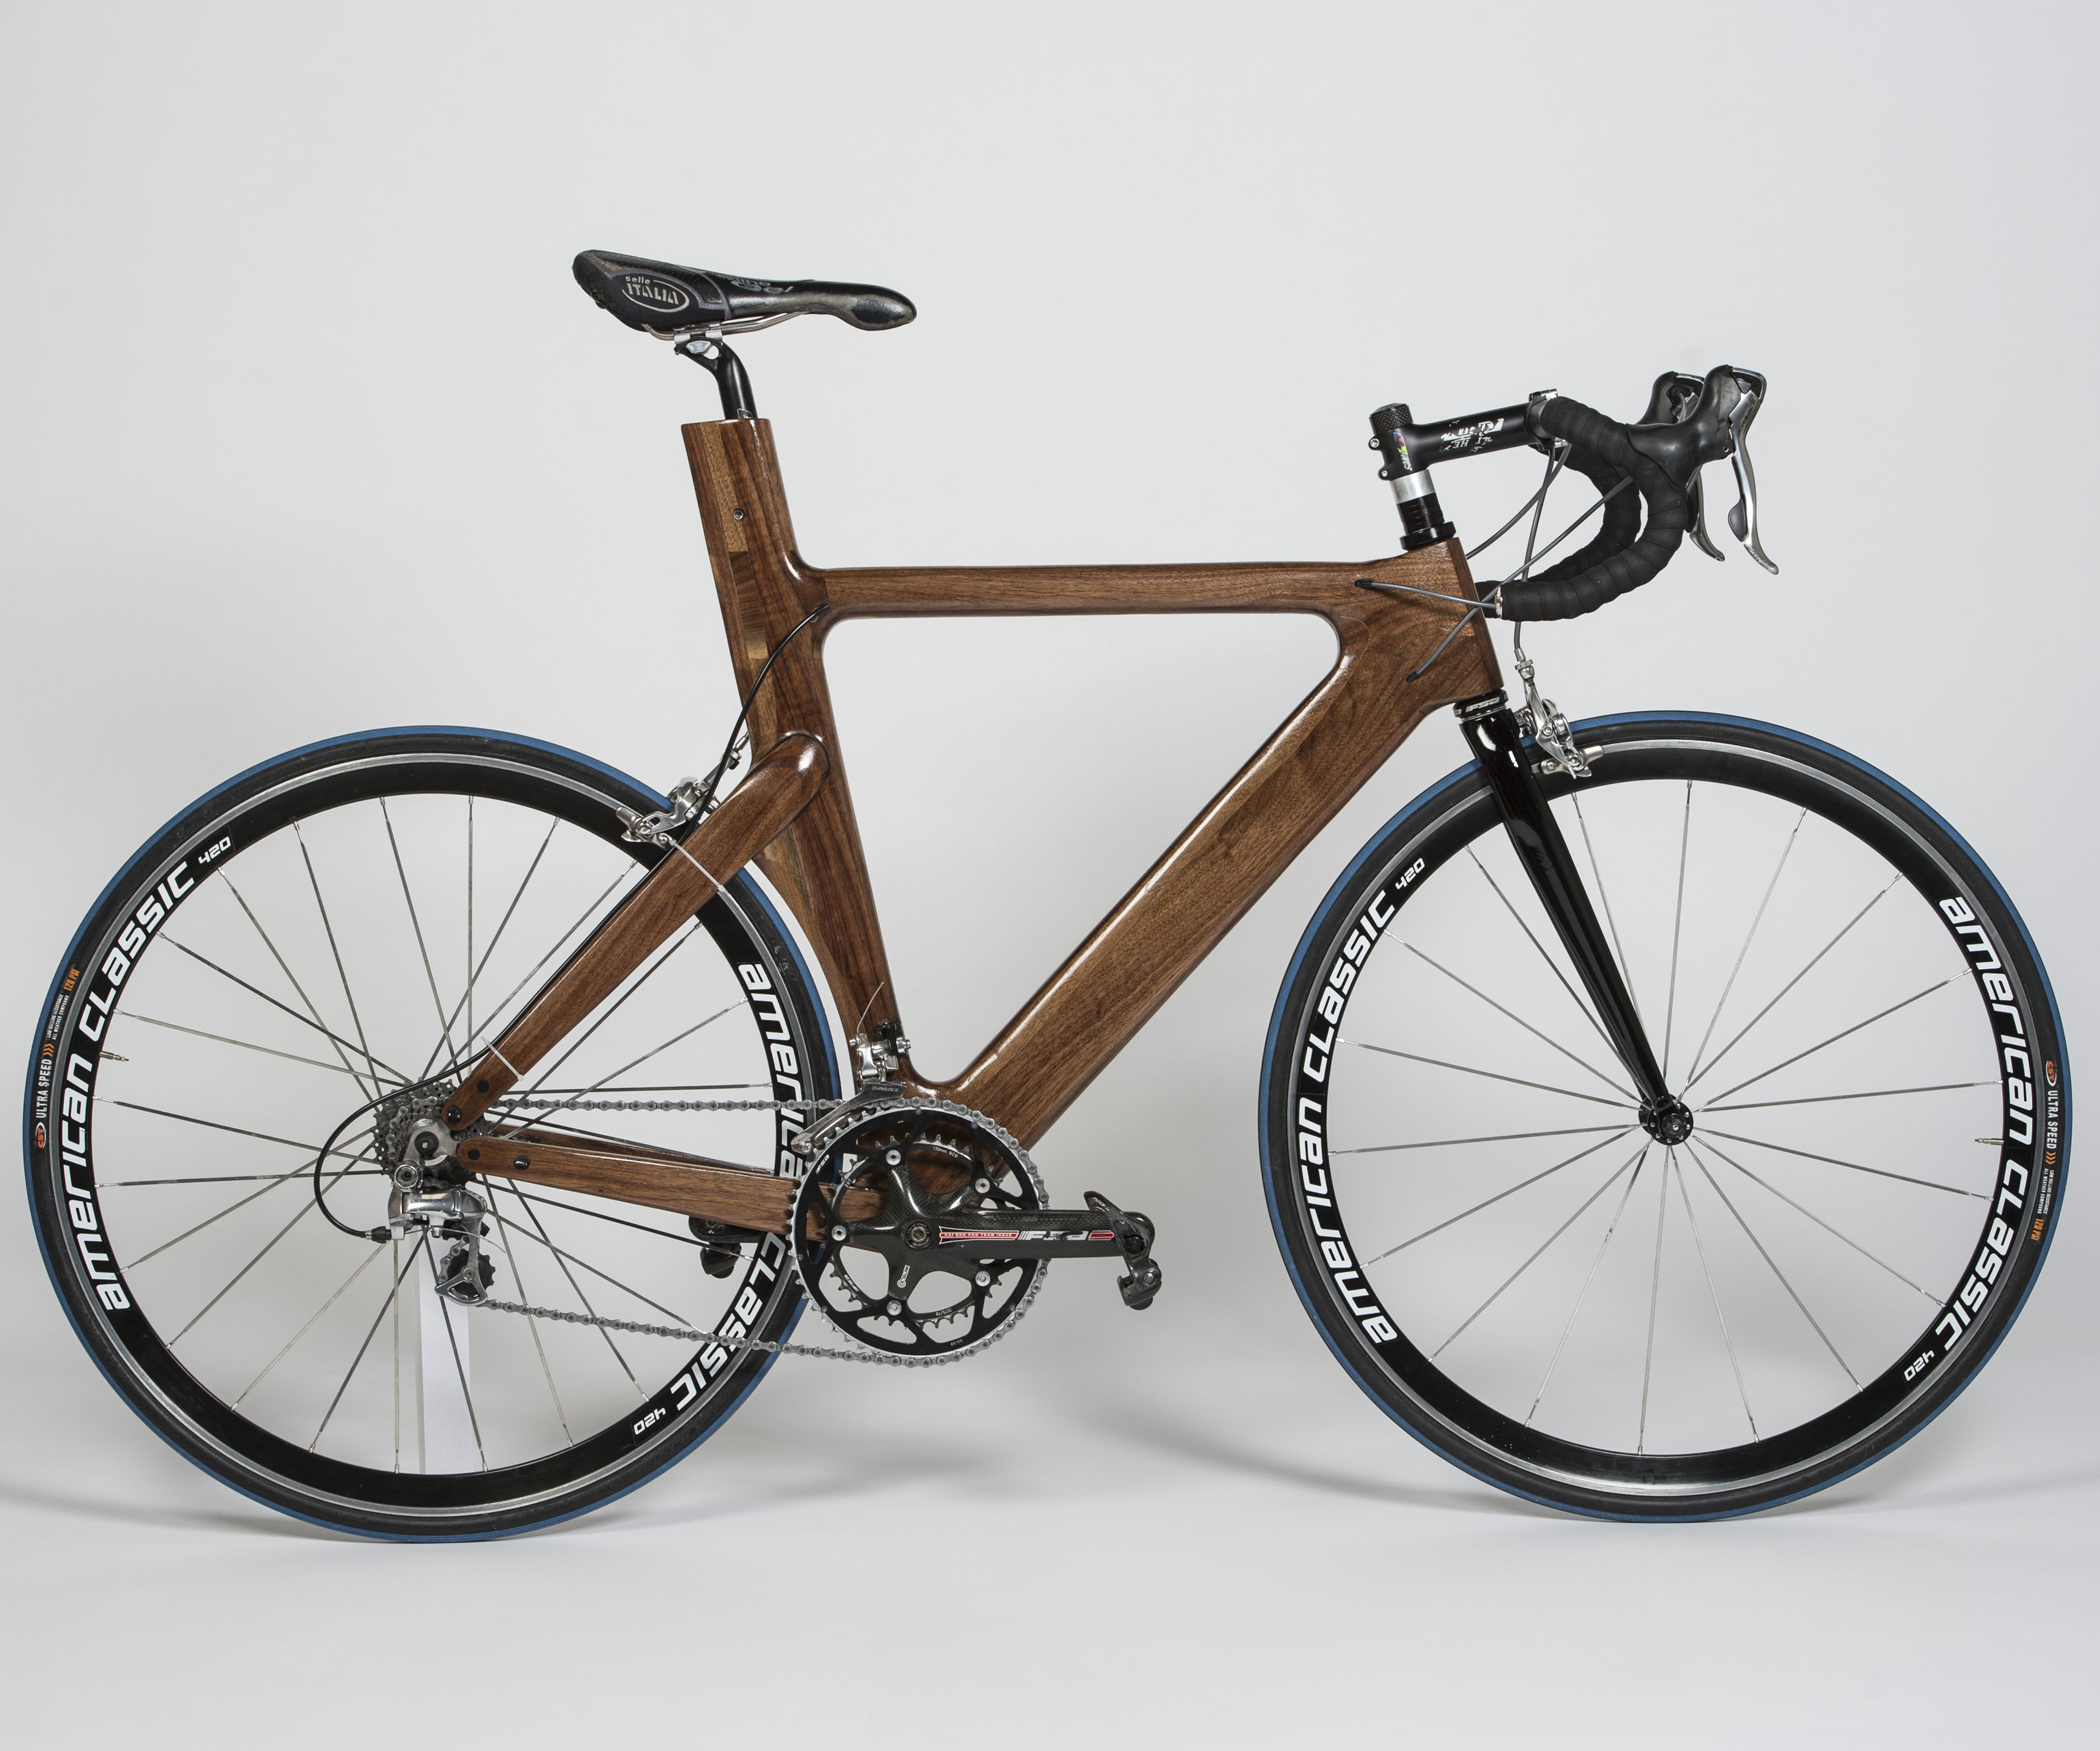 Walnut Wood (triathlon) Bicycle Frame